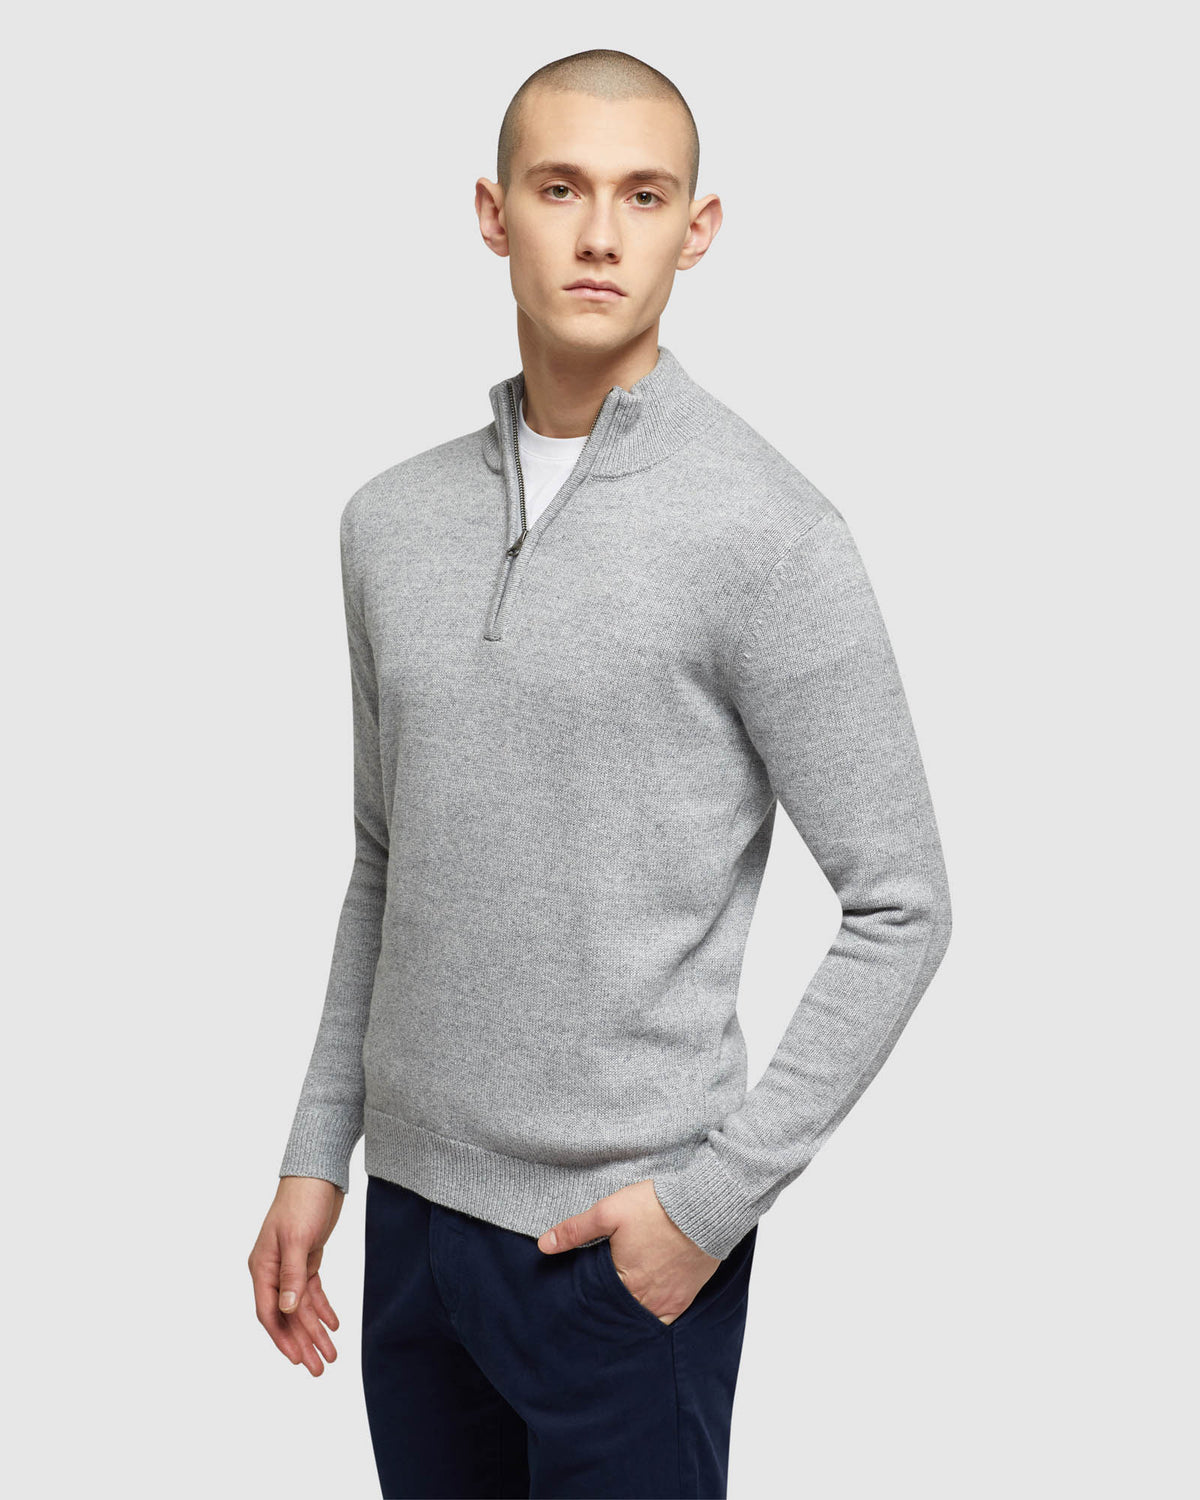 ROBERT ZIP NECK KNIT